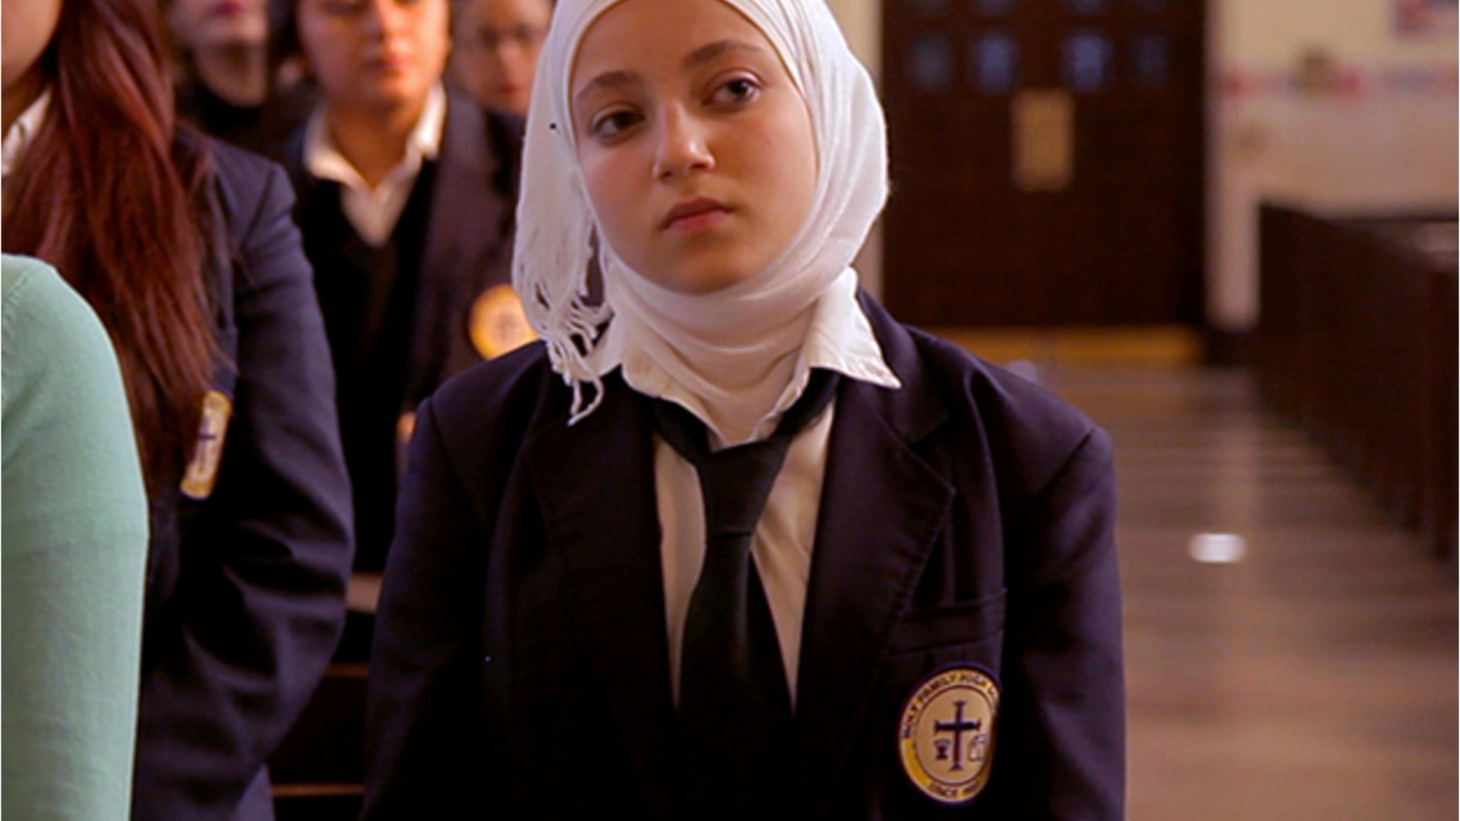 """Dalya Zeno and her mother left their home in Syria in 2012, making a new life for themselves in Glendale. """"Dalya's Other Country"""" is a documentary that follows Zeno through her high school years, as the Syrian war continues, and as President Trump comes to power."""